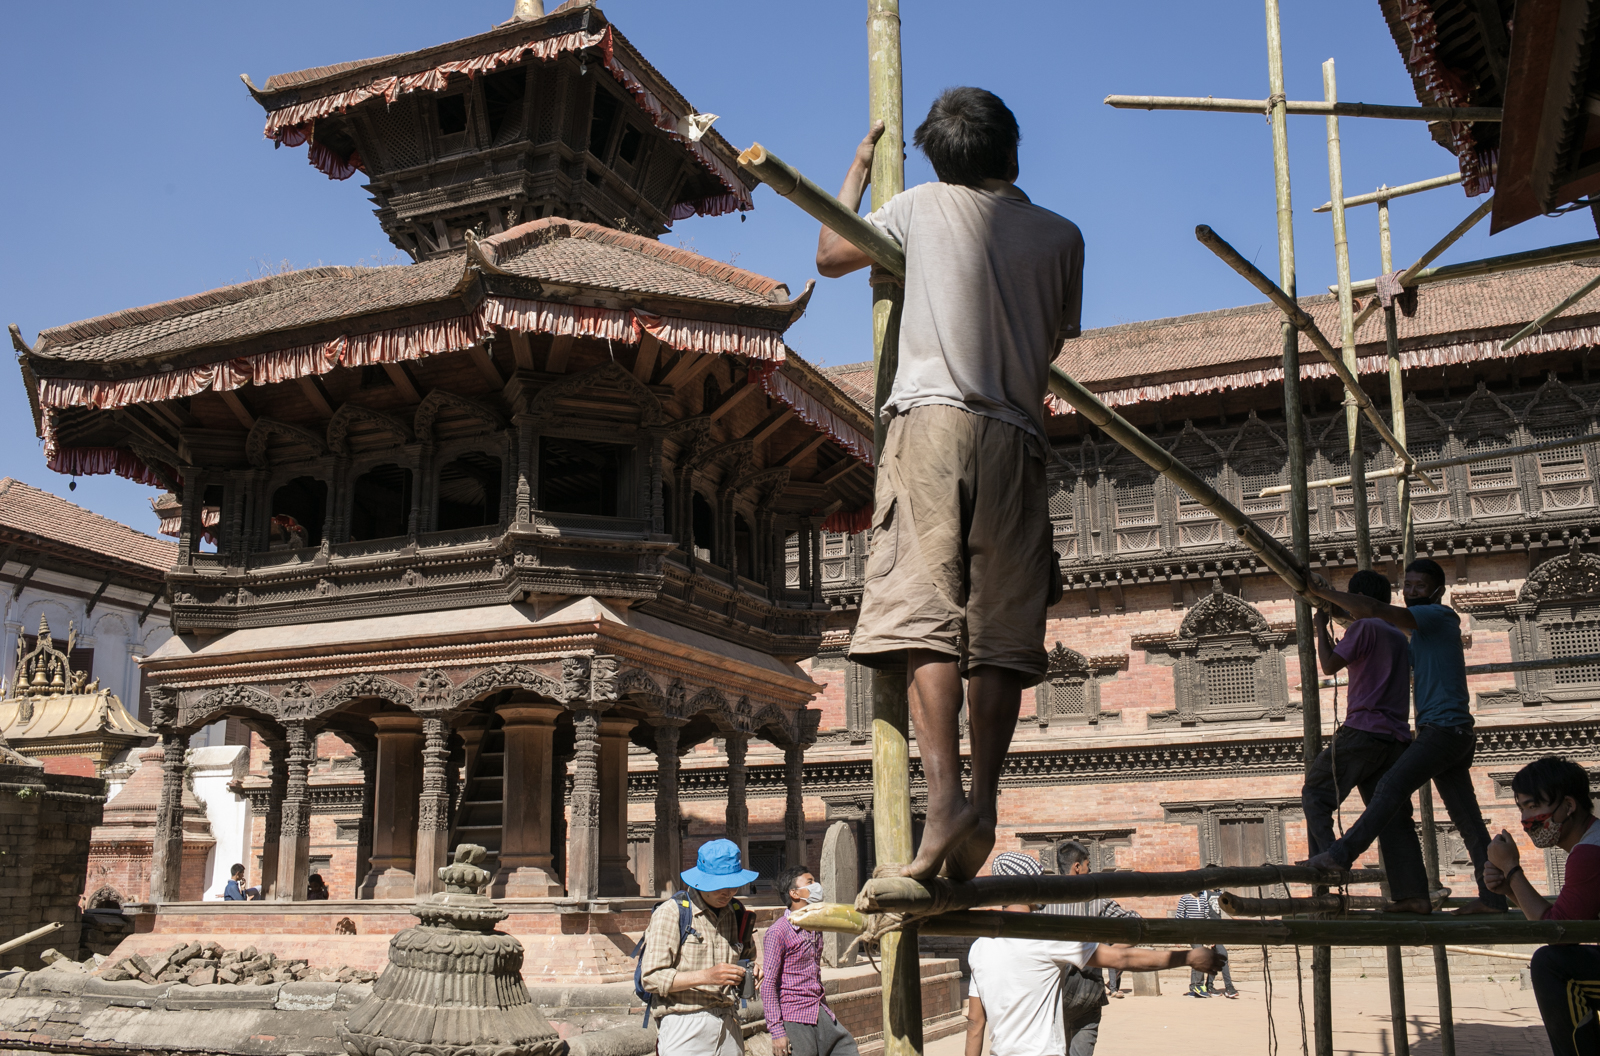 Men stand on temporary framework that was put into place for the reconstruction of the temples.